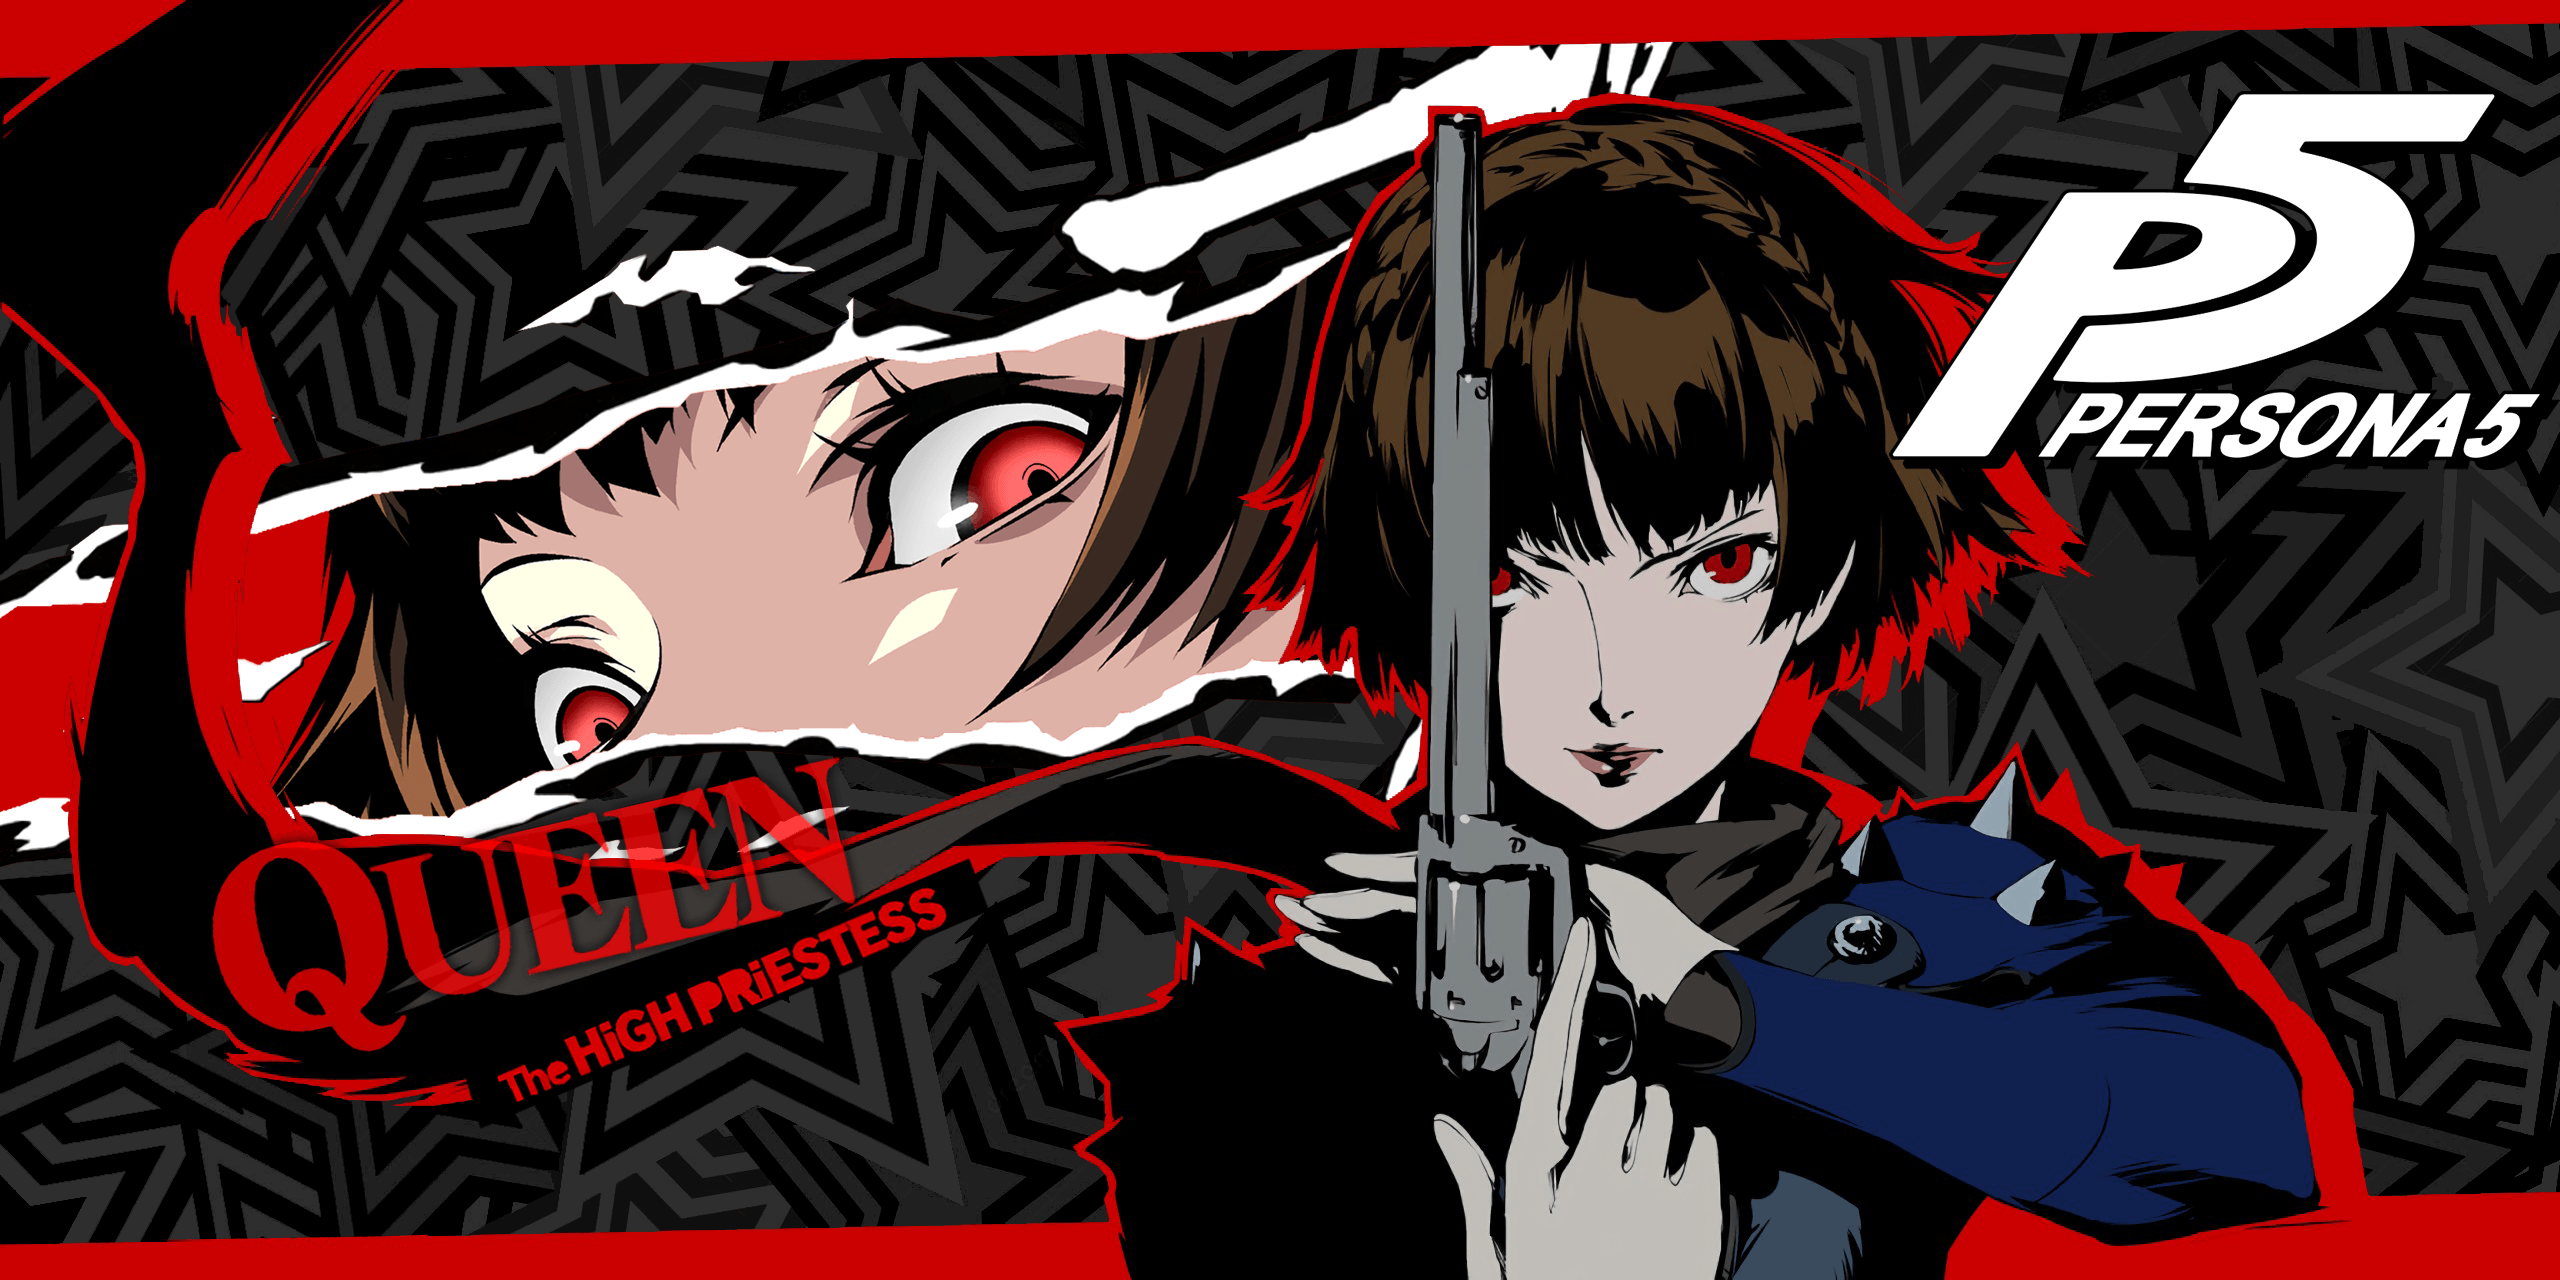 I made some Persona 5 Wallpapers